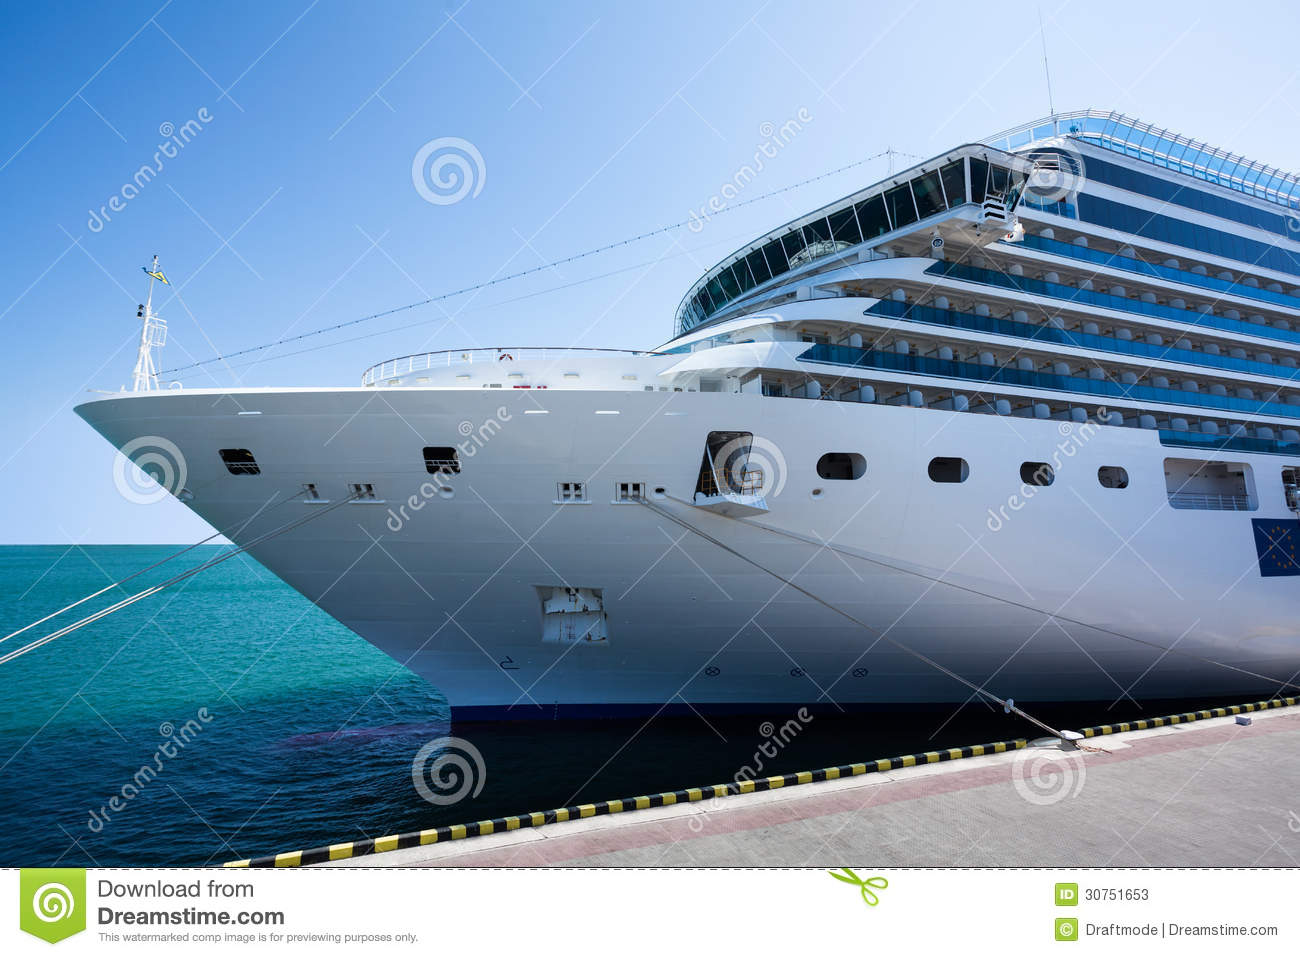 Passenger ship stock photos image 30751653 for Passengers spaceship